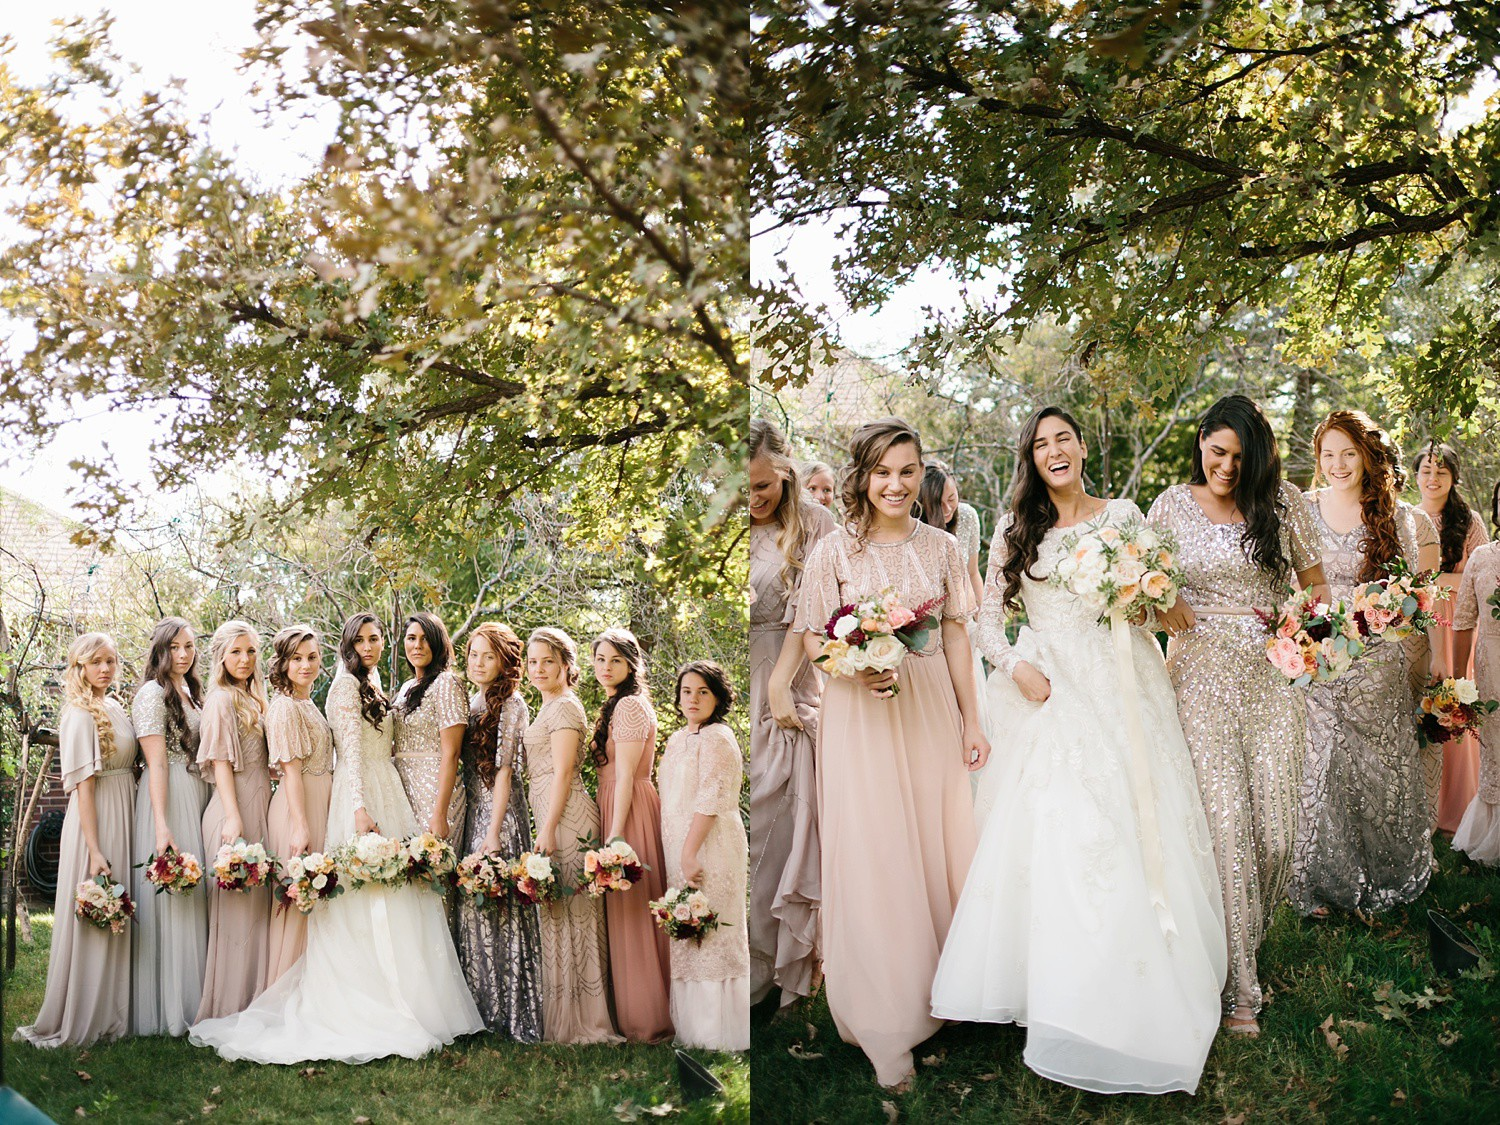 an-elegant-family-ranch-wedding-on-lake-worth-with-burgundy-apricot-and-blush-inspired-decorations-by-north-texas-wedding-photographer-rachel-meagan-photography-_-07